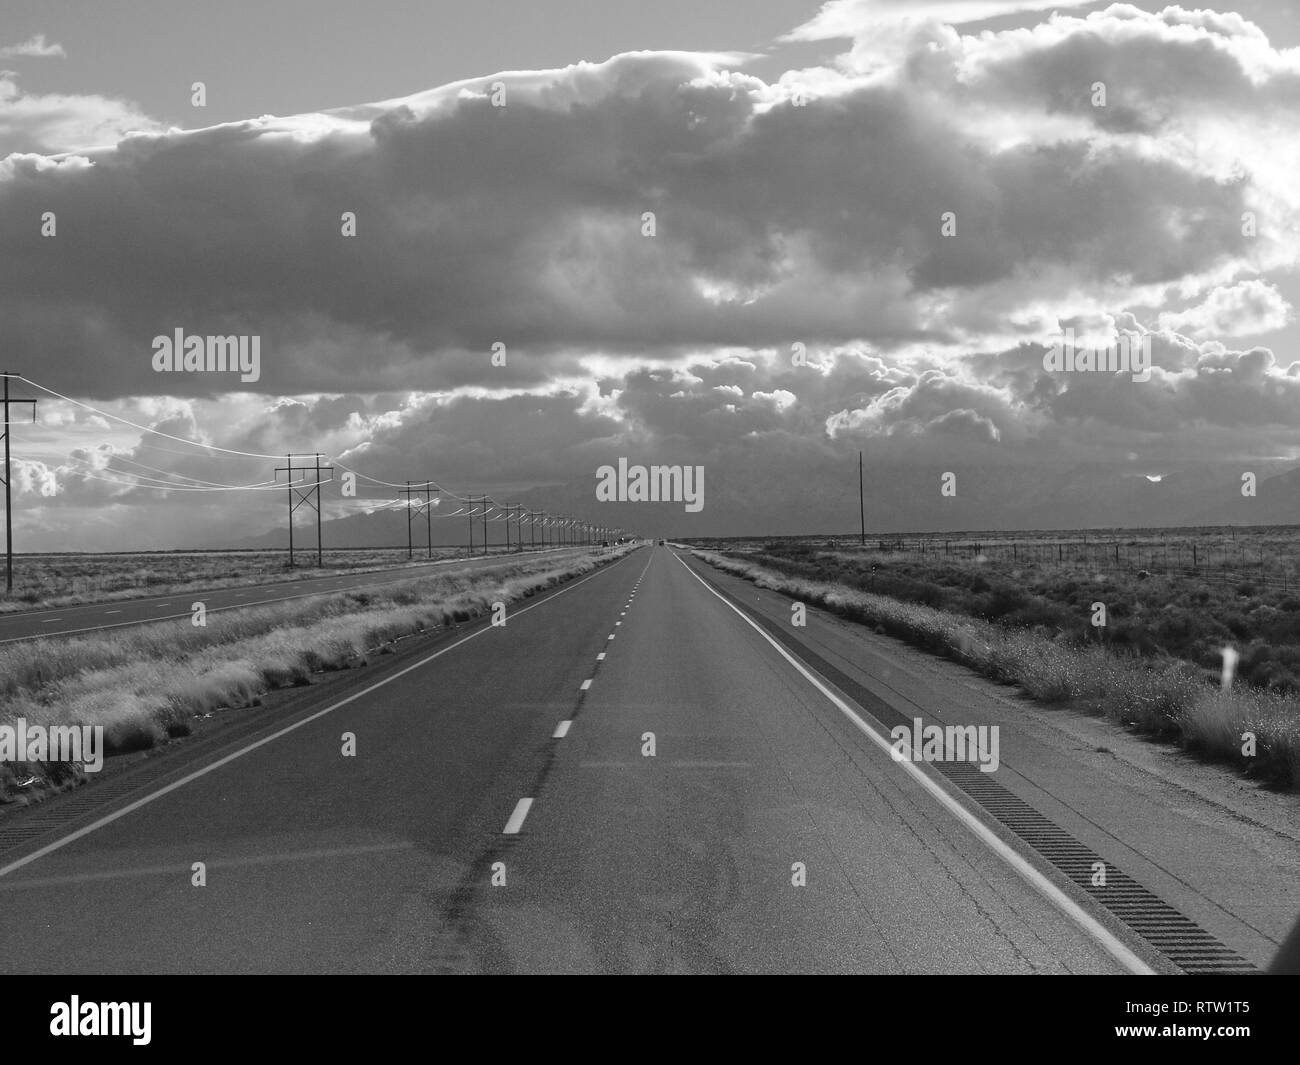 US 70 highway south in eastern New Mexico. - Stock Image